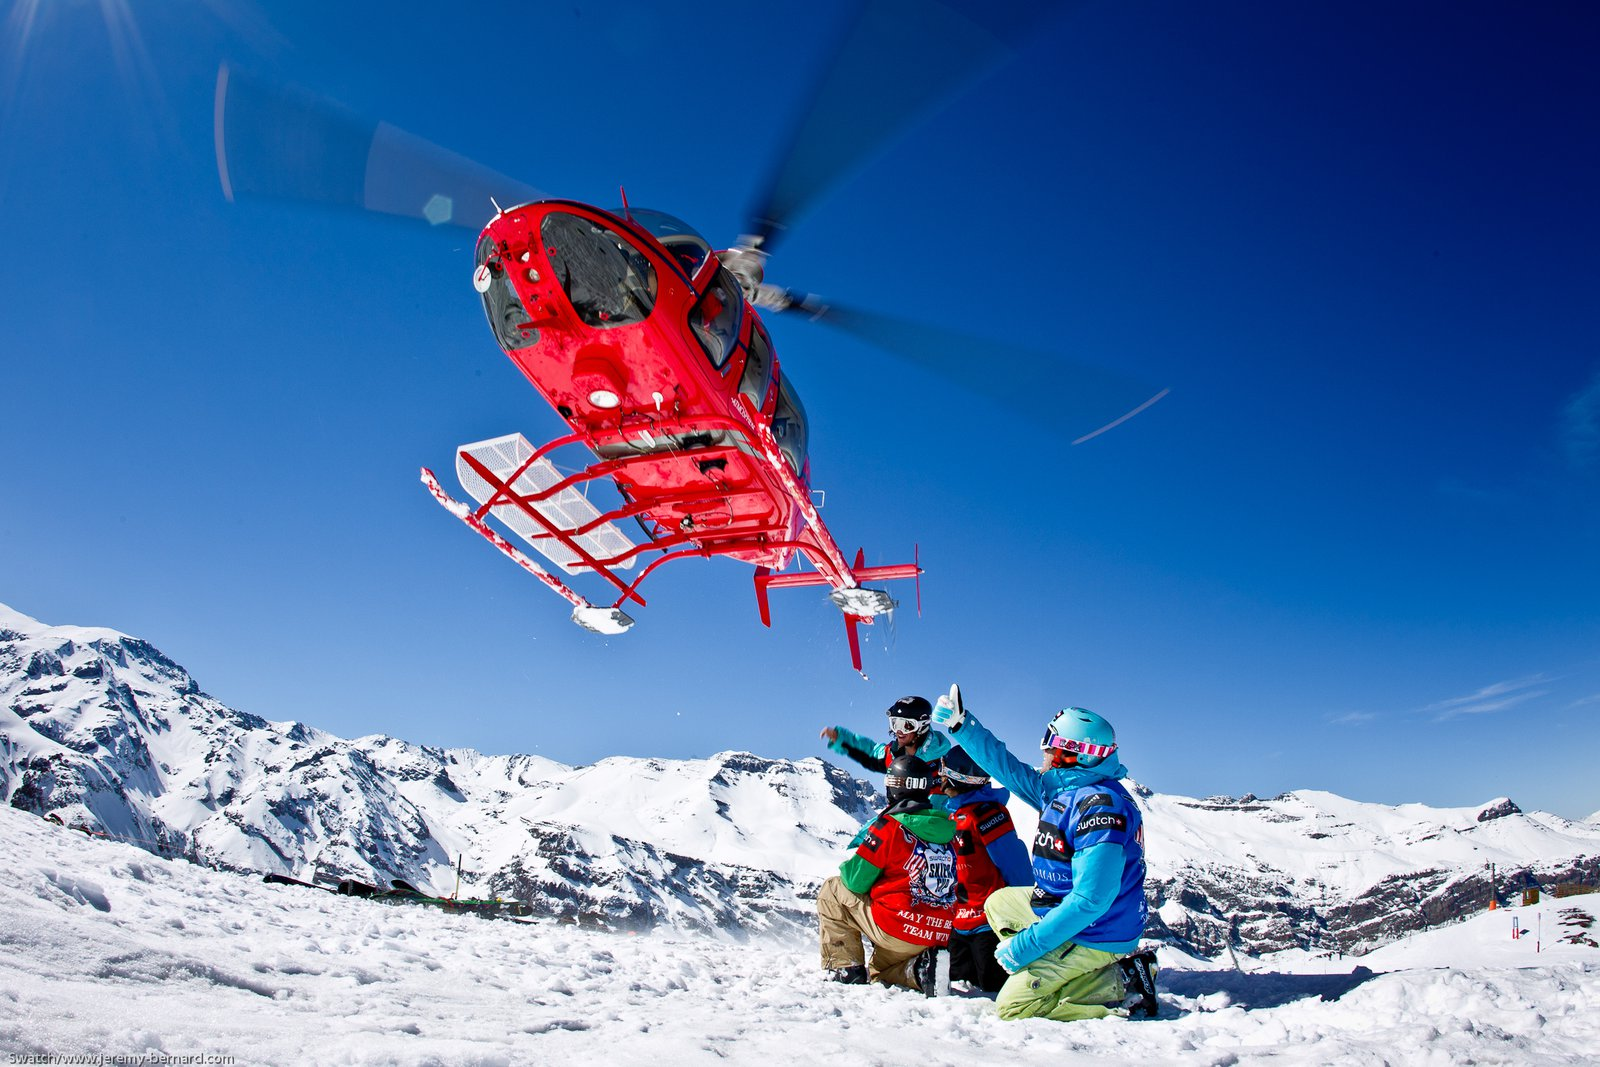 Heli pick-up at the Swatch Skiers Cup